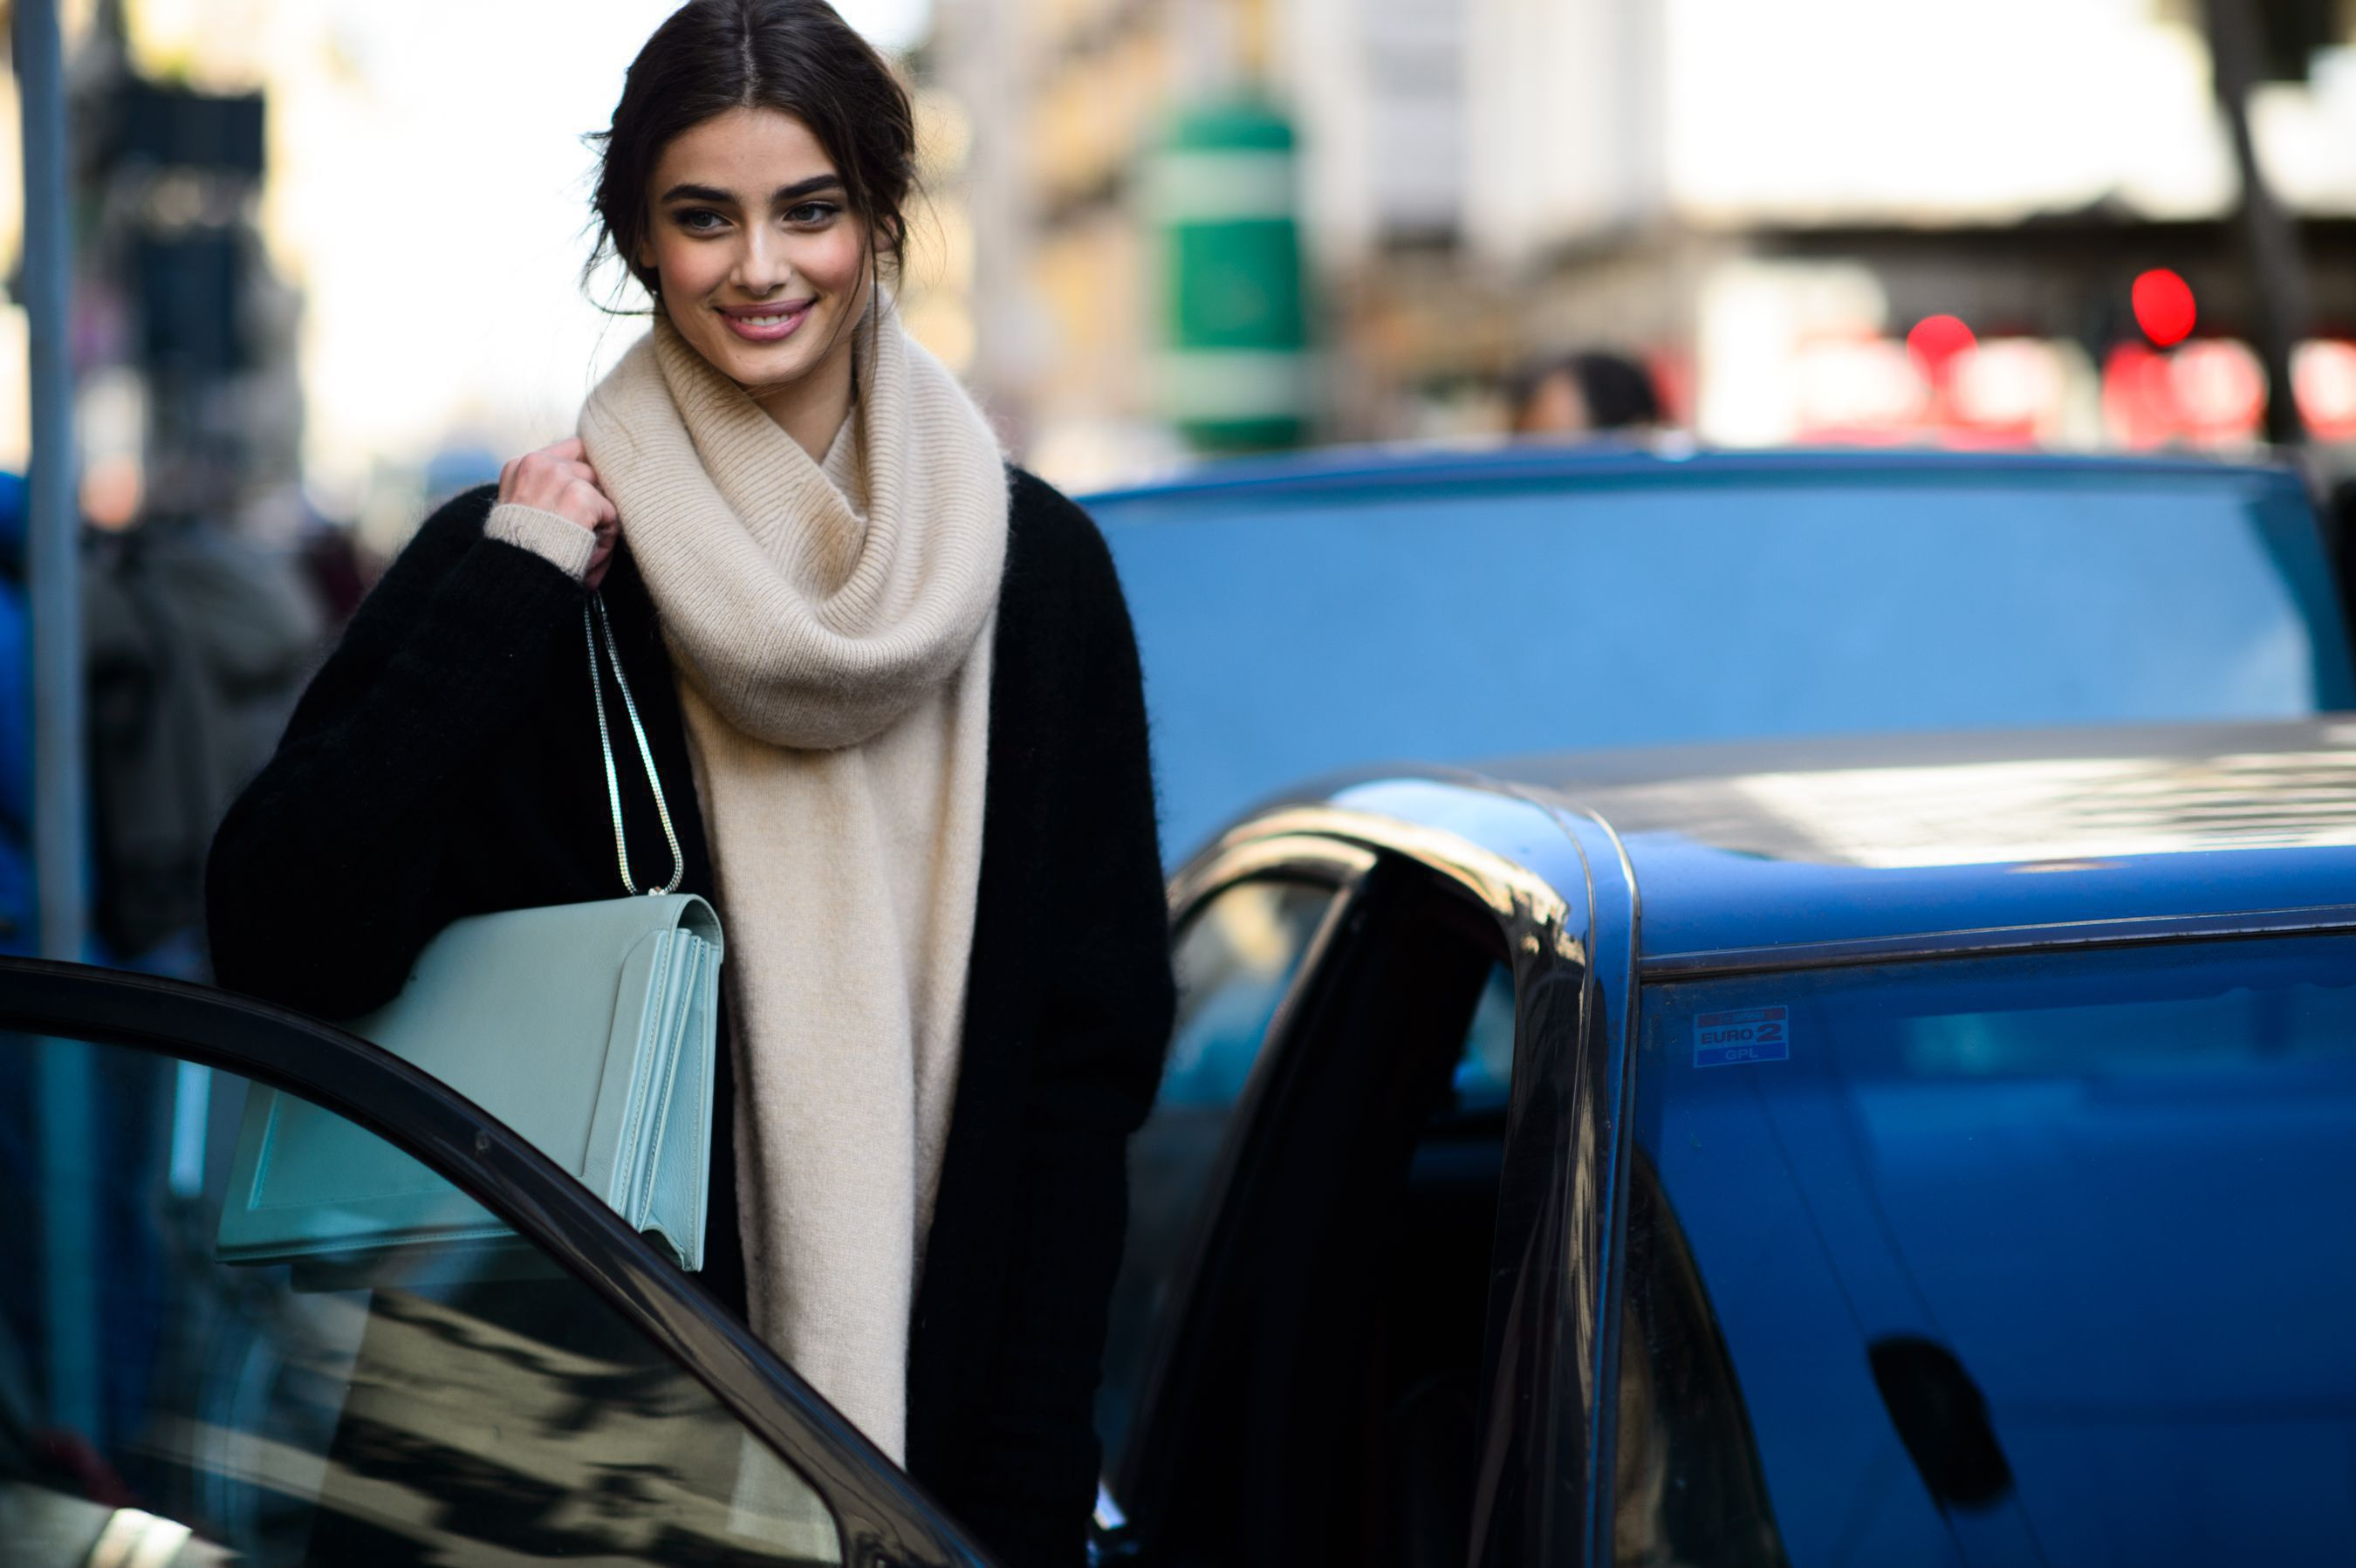 taylor hill smile wallpaper pictures 60478